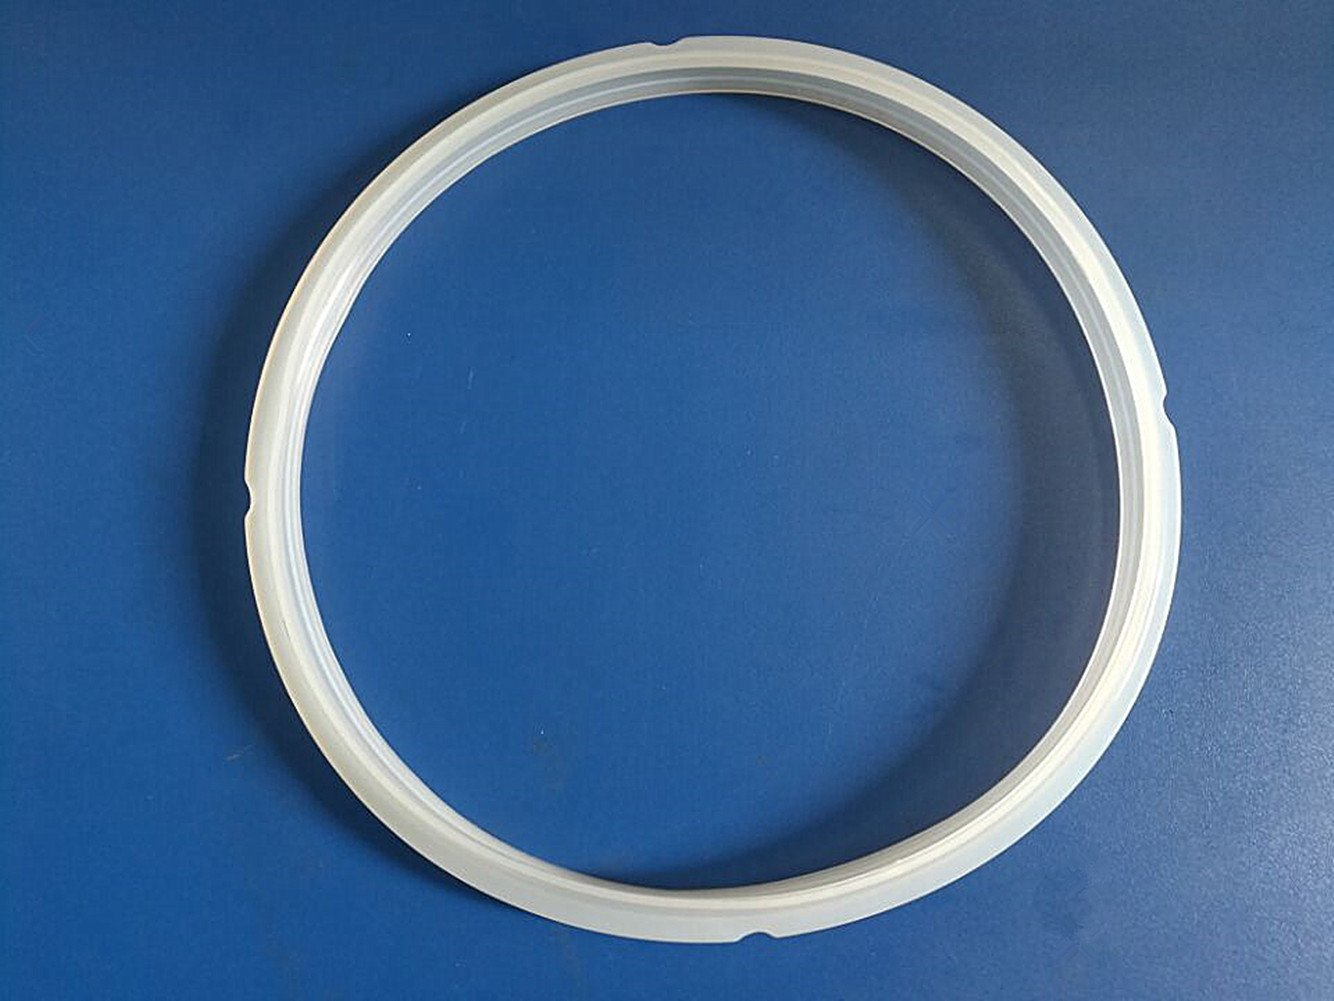 Kitchen Multi Power Cooker Silicone Sealing Ring for 6 qt 5 Quart Models Rubber Gasket by wollcocer (Image #3)